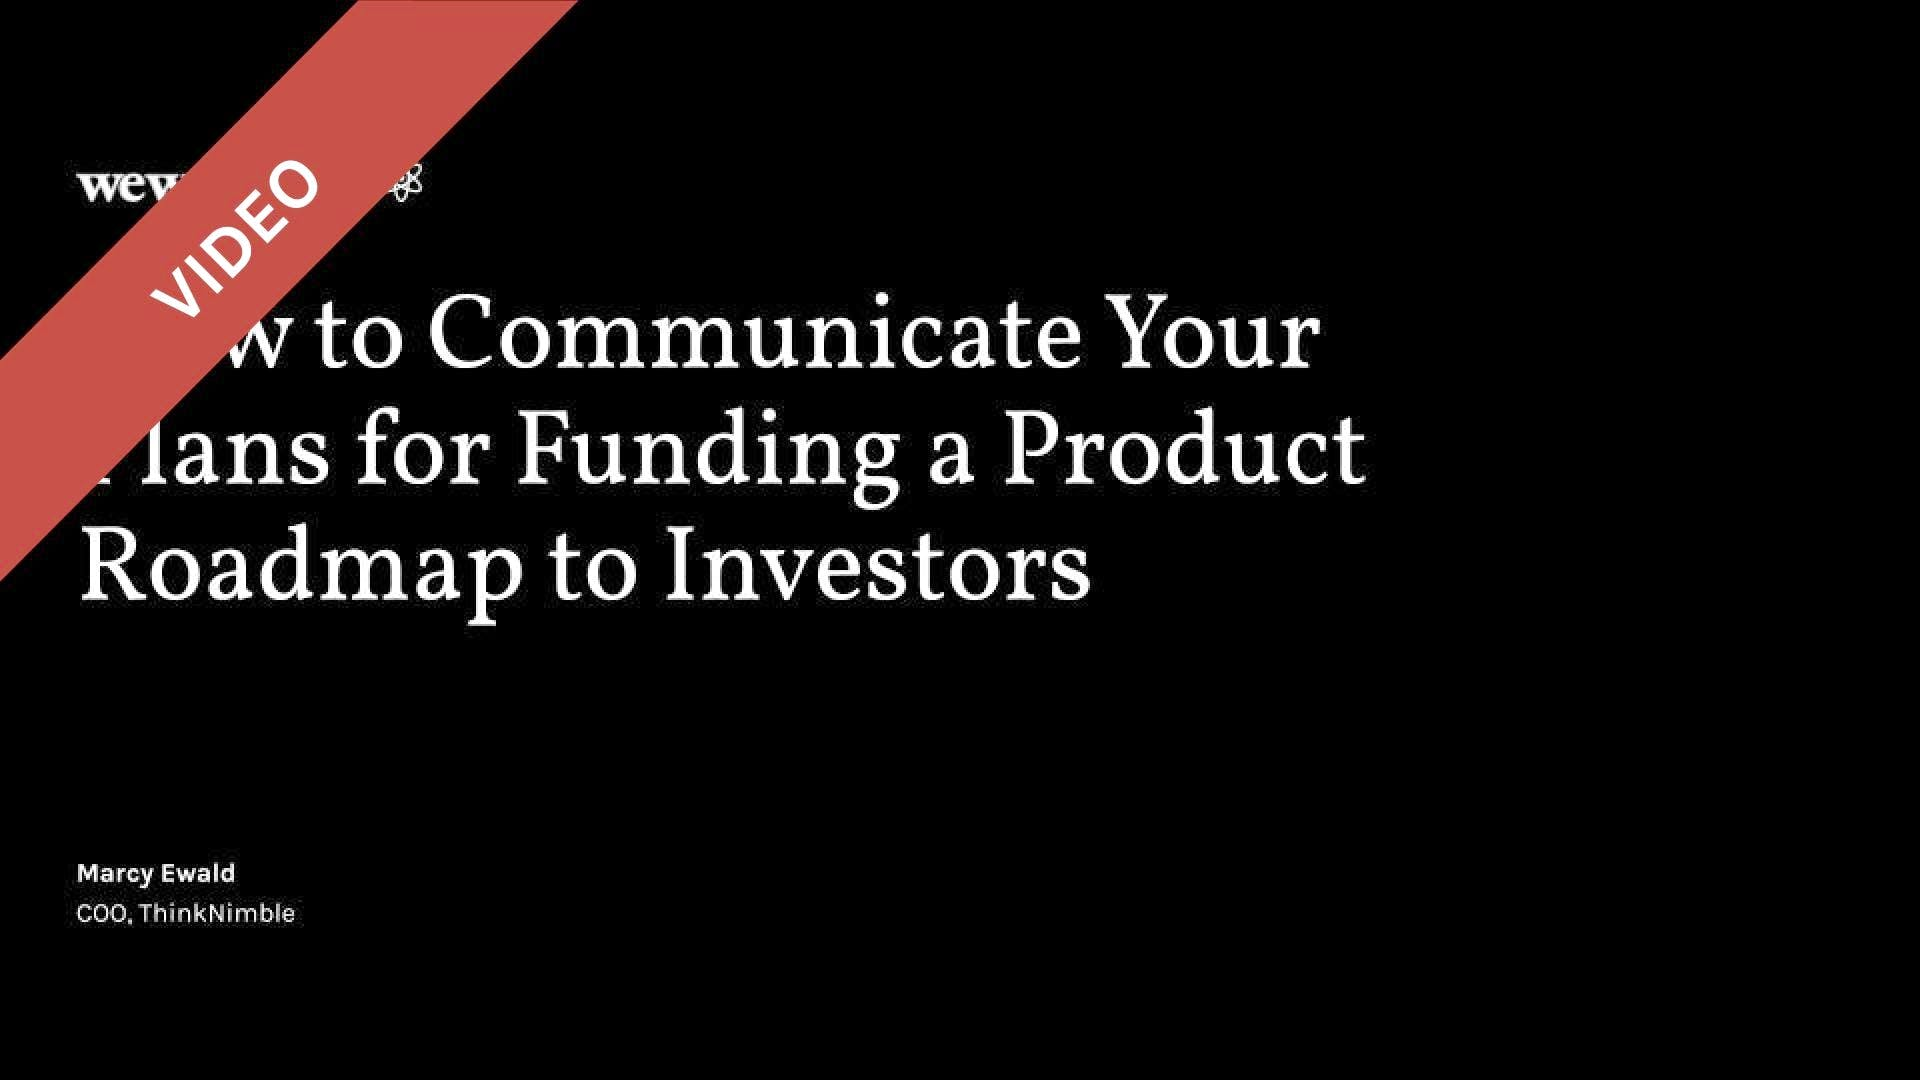 How to Communicate Your Plans for Funding a Product Roadmap to Investors